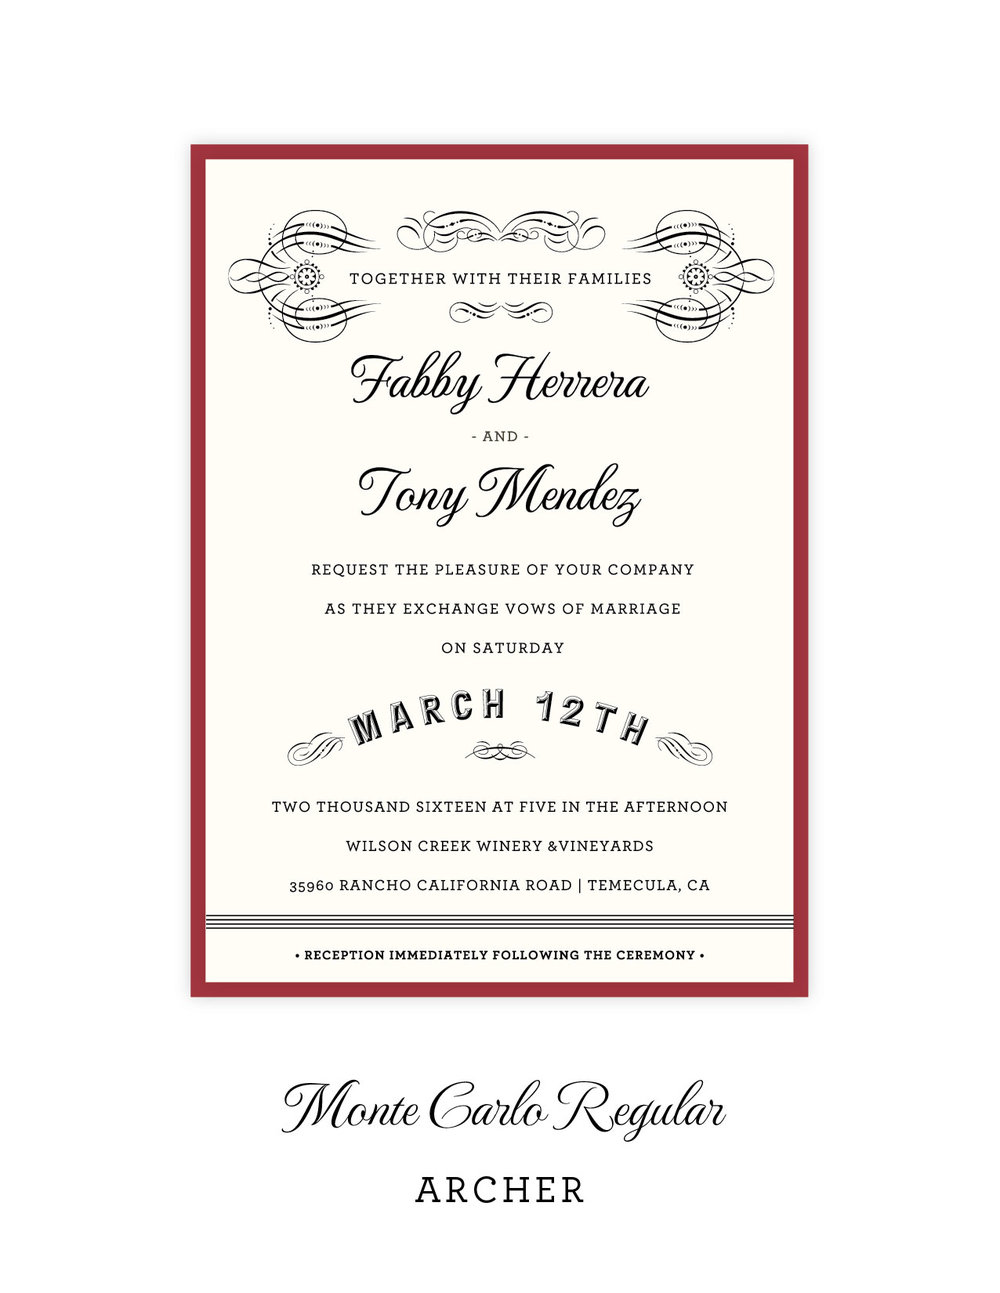 Wedding Fonts_Monte Carlo & Archer.jpg